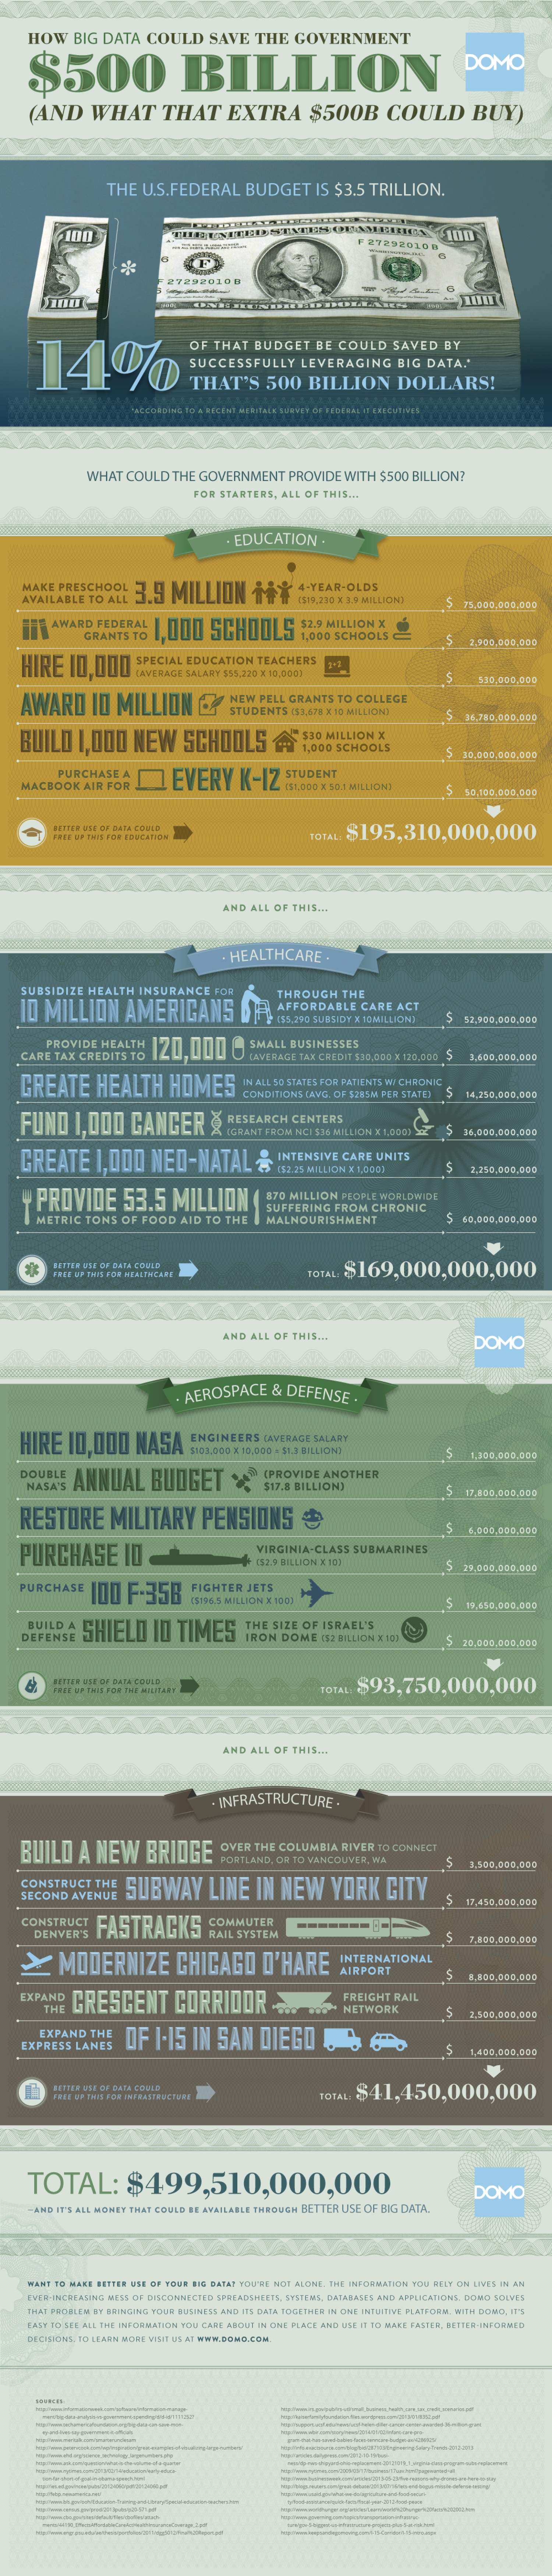 How Big Data Could Save The Government $500 Billion (And What That Extra $500B Could Buy) Infographic